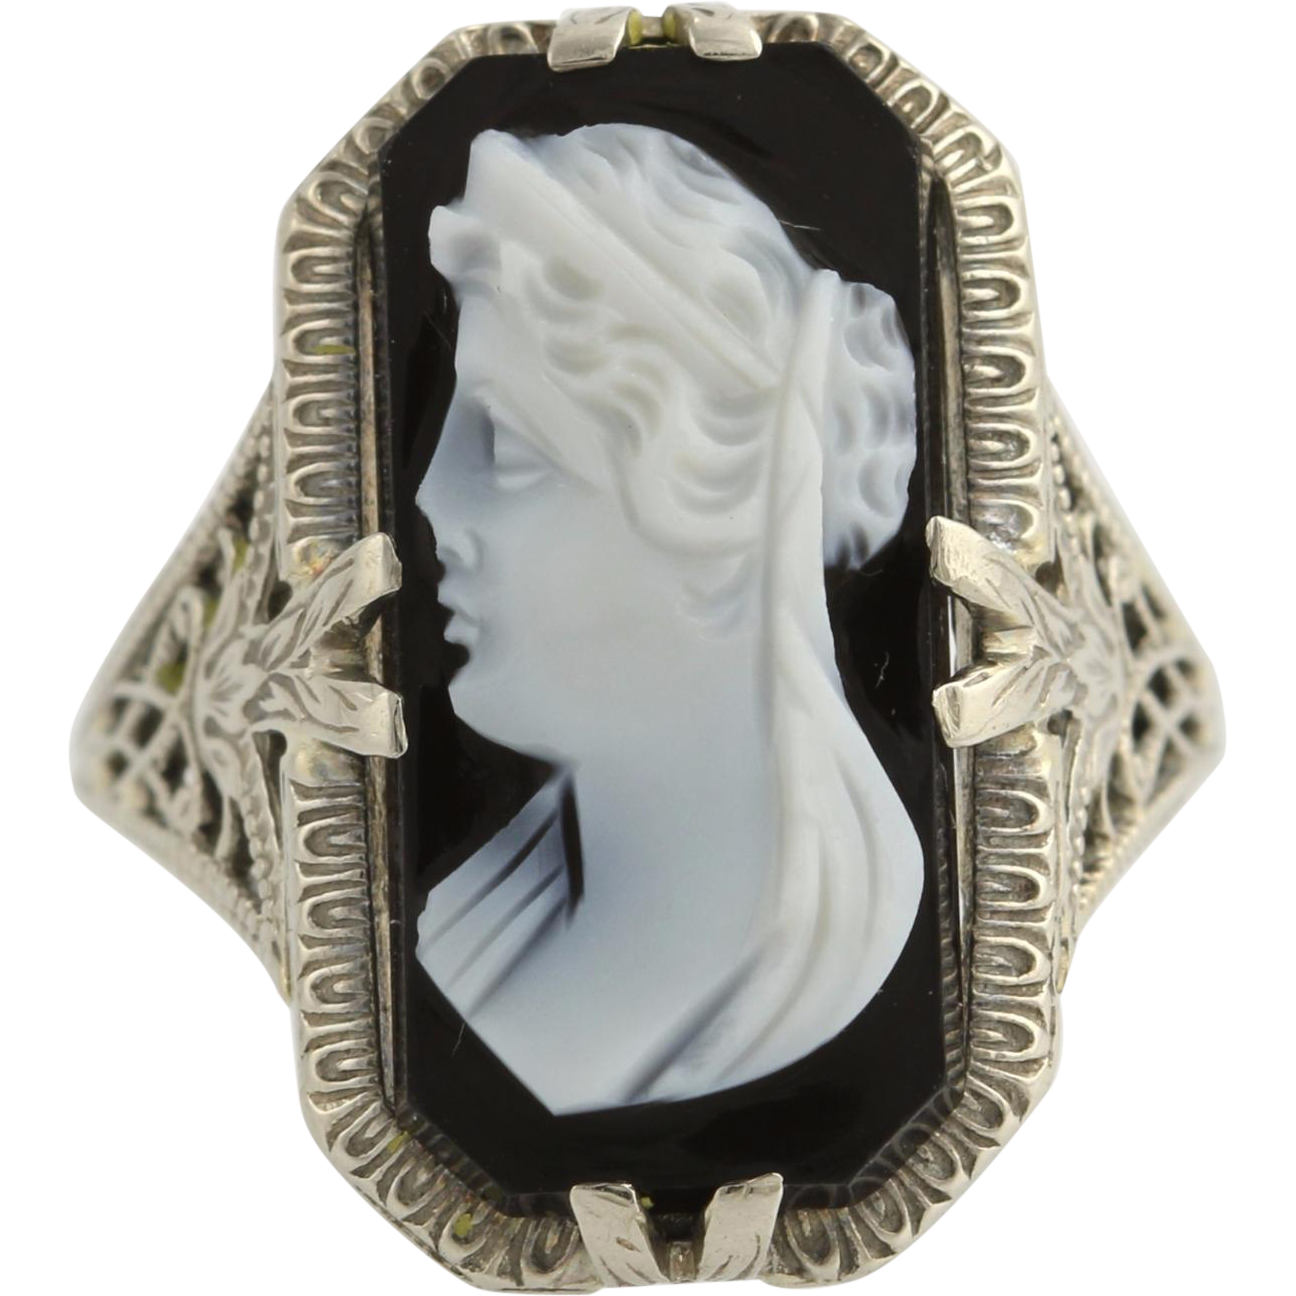 Art Deco Cameo Ring Carved Banded Agate Black & White - 14k White Gold Vintage